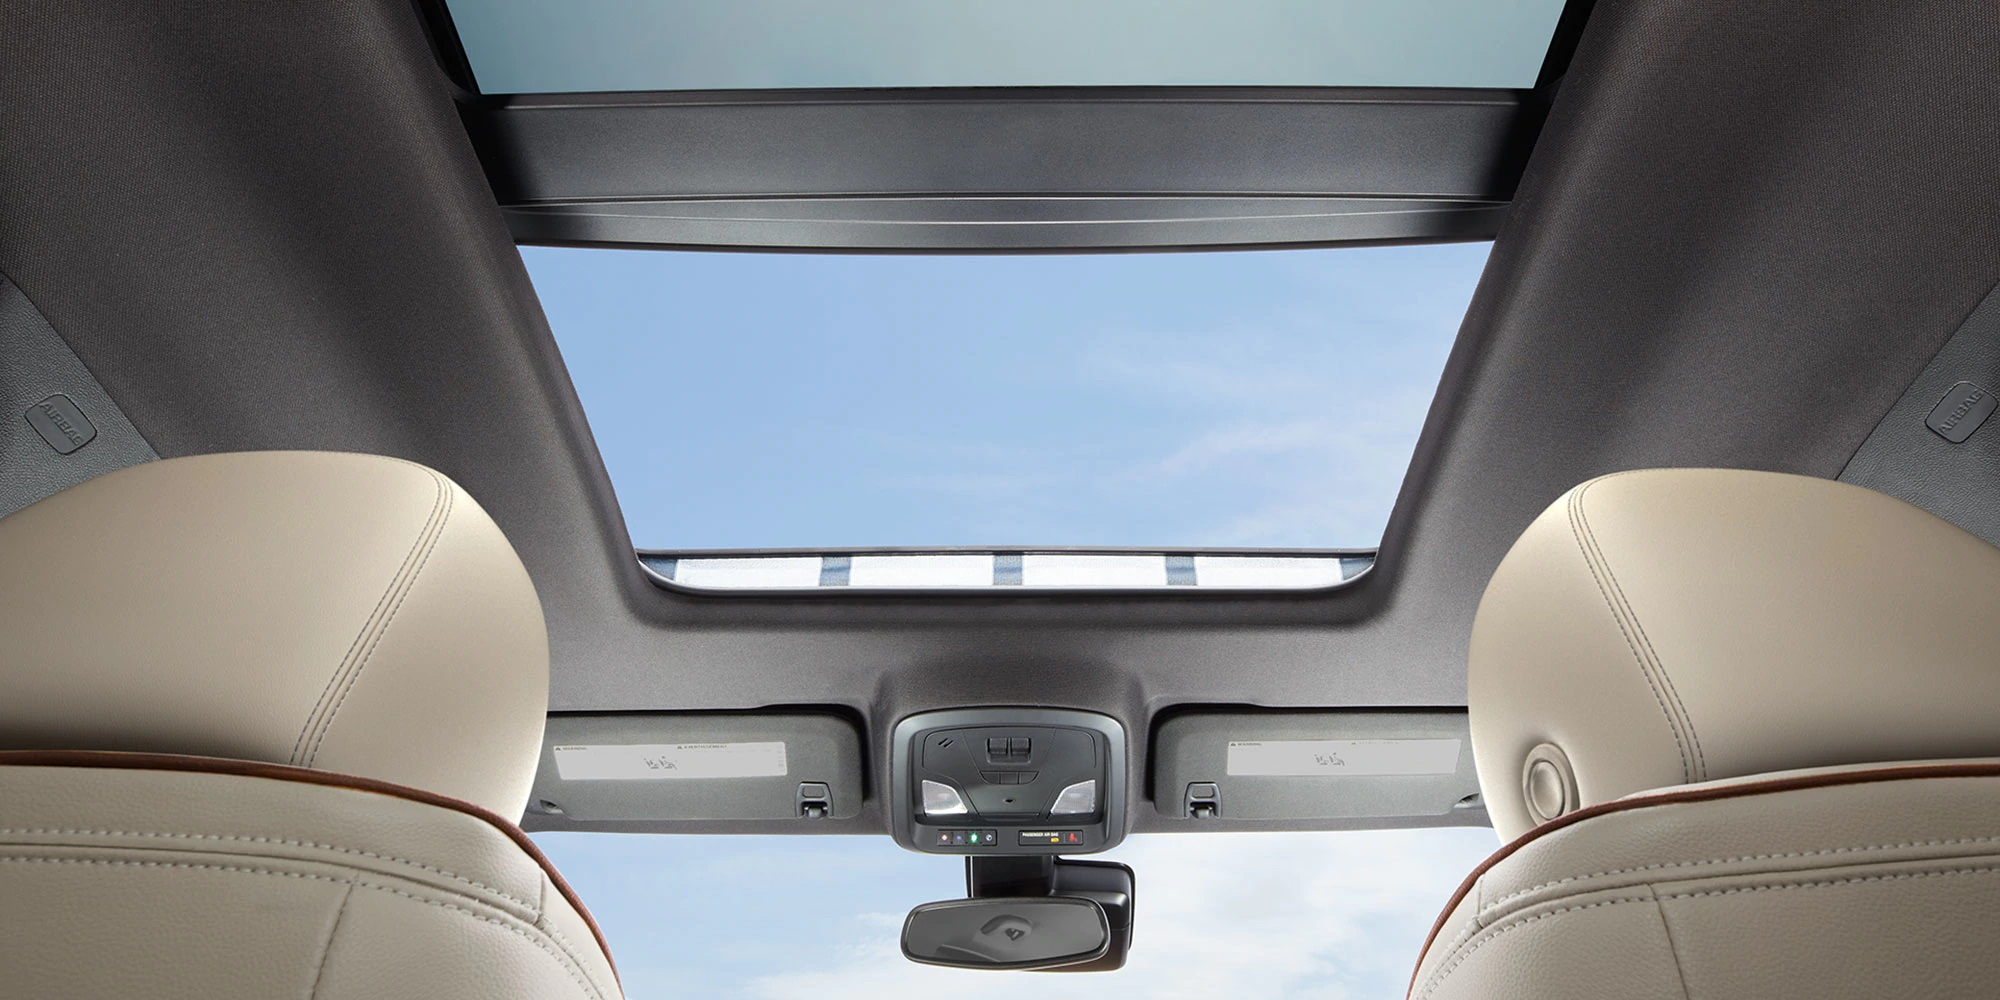 2019 Impala Sunroof